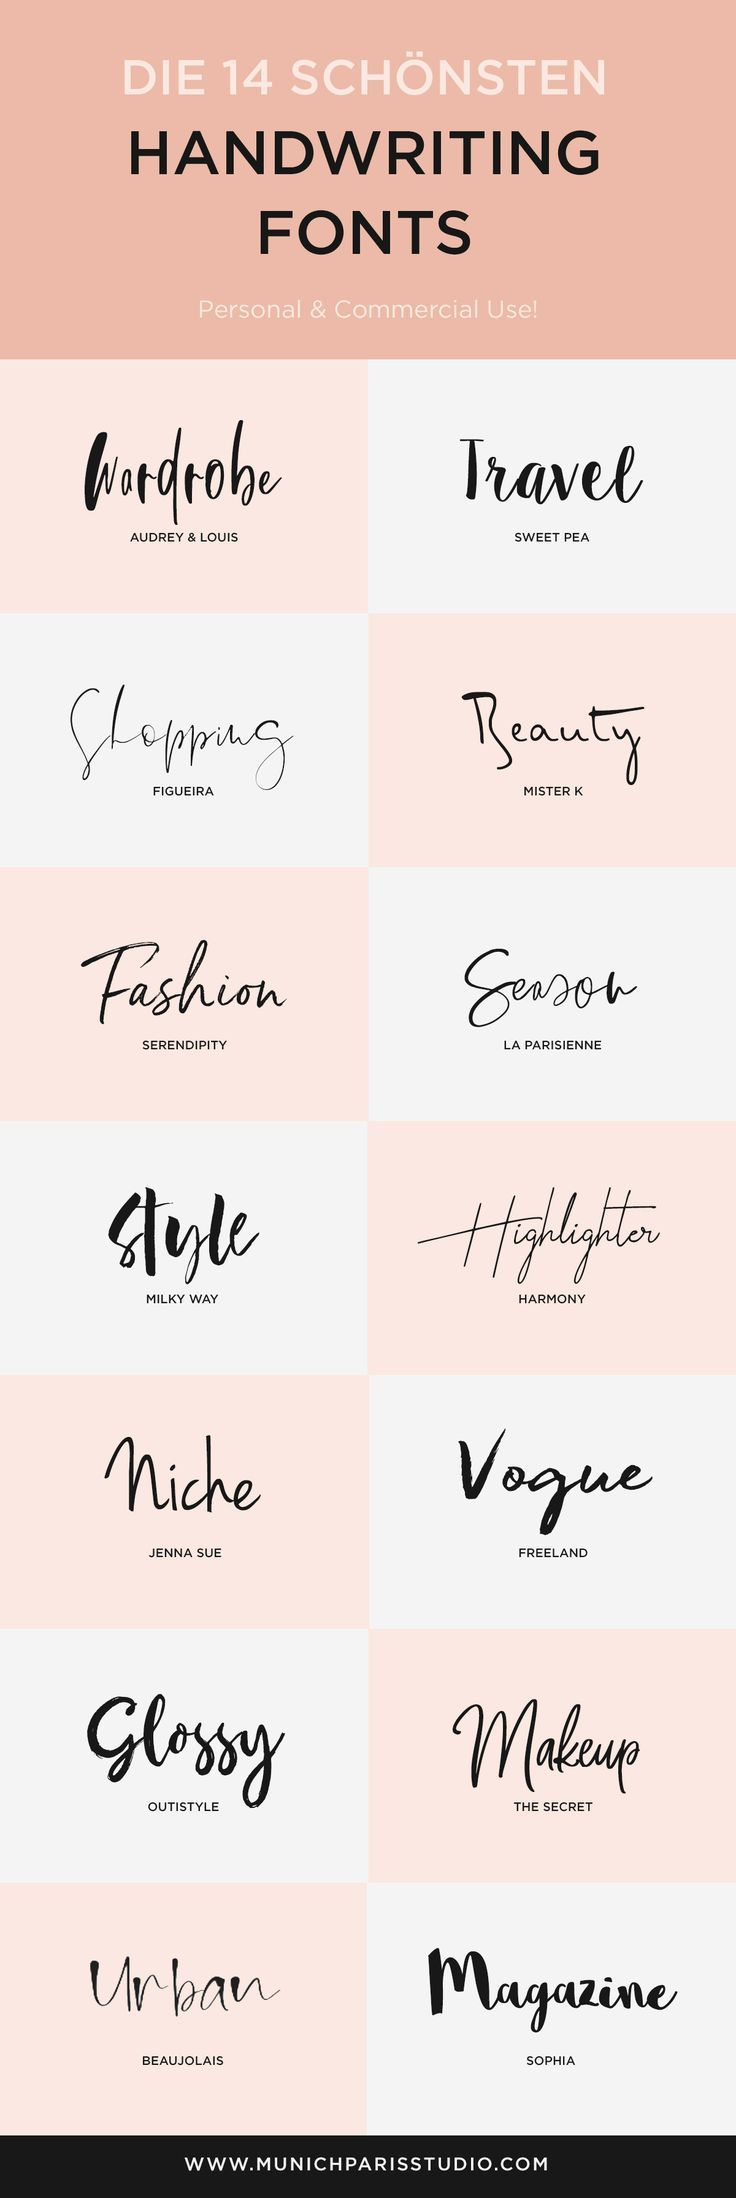 Die 14 schönsten Handschriften Fonts zum Download – MunichParis Studio – WordPress Themes & Tutorials For Bloggers